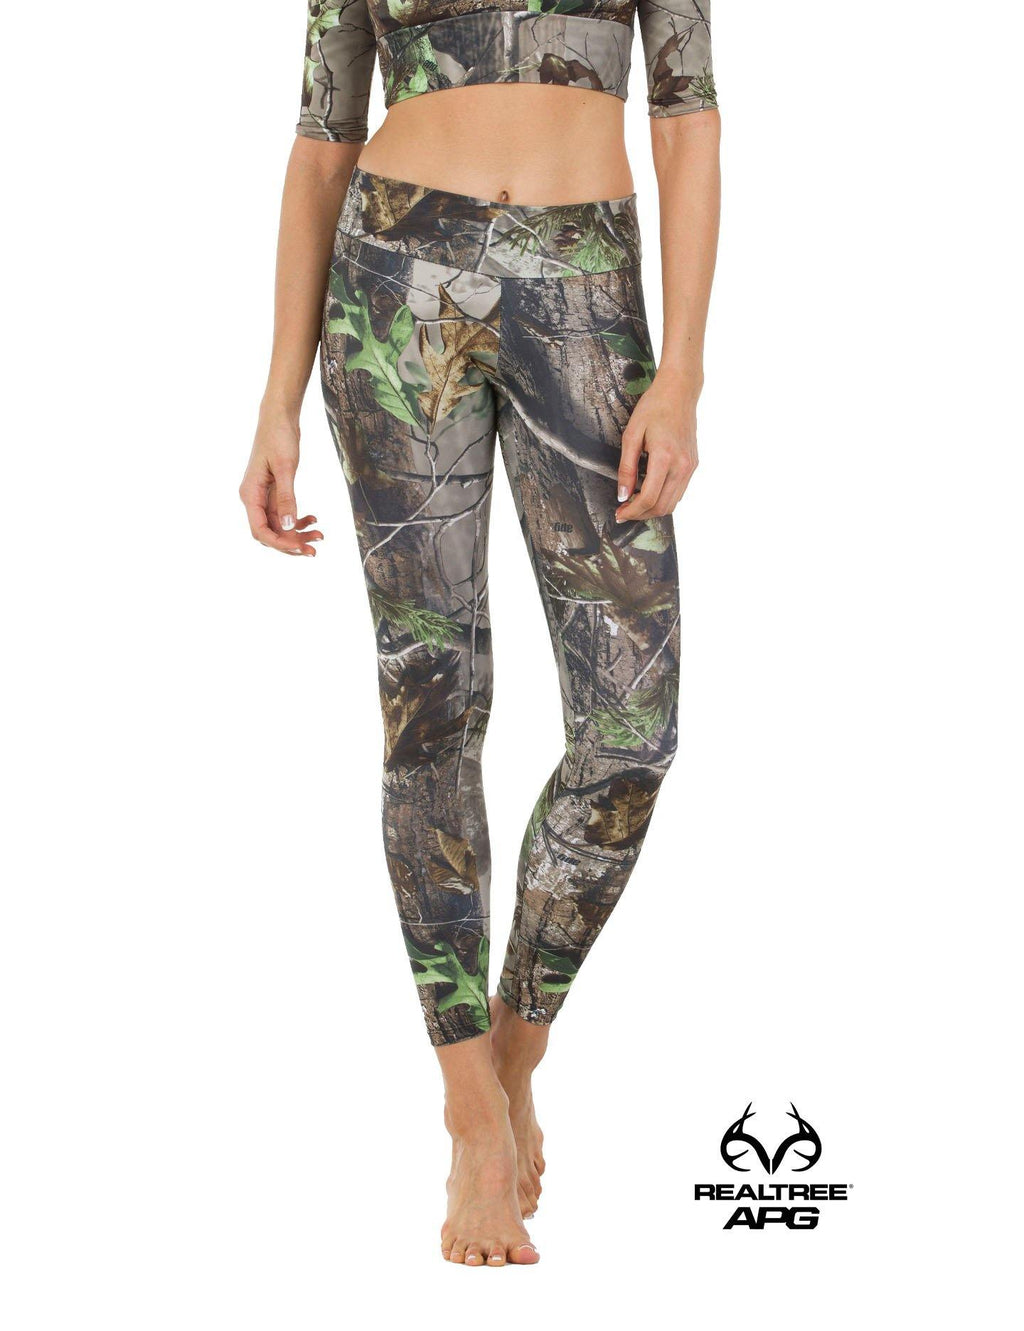 Apsara Leggings Low Waist Full Length, Realtree APG - Apsara Style